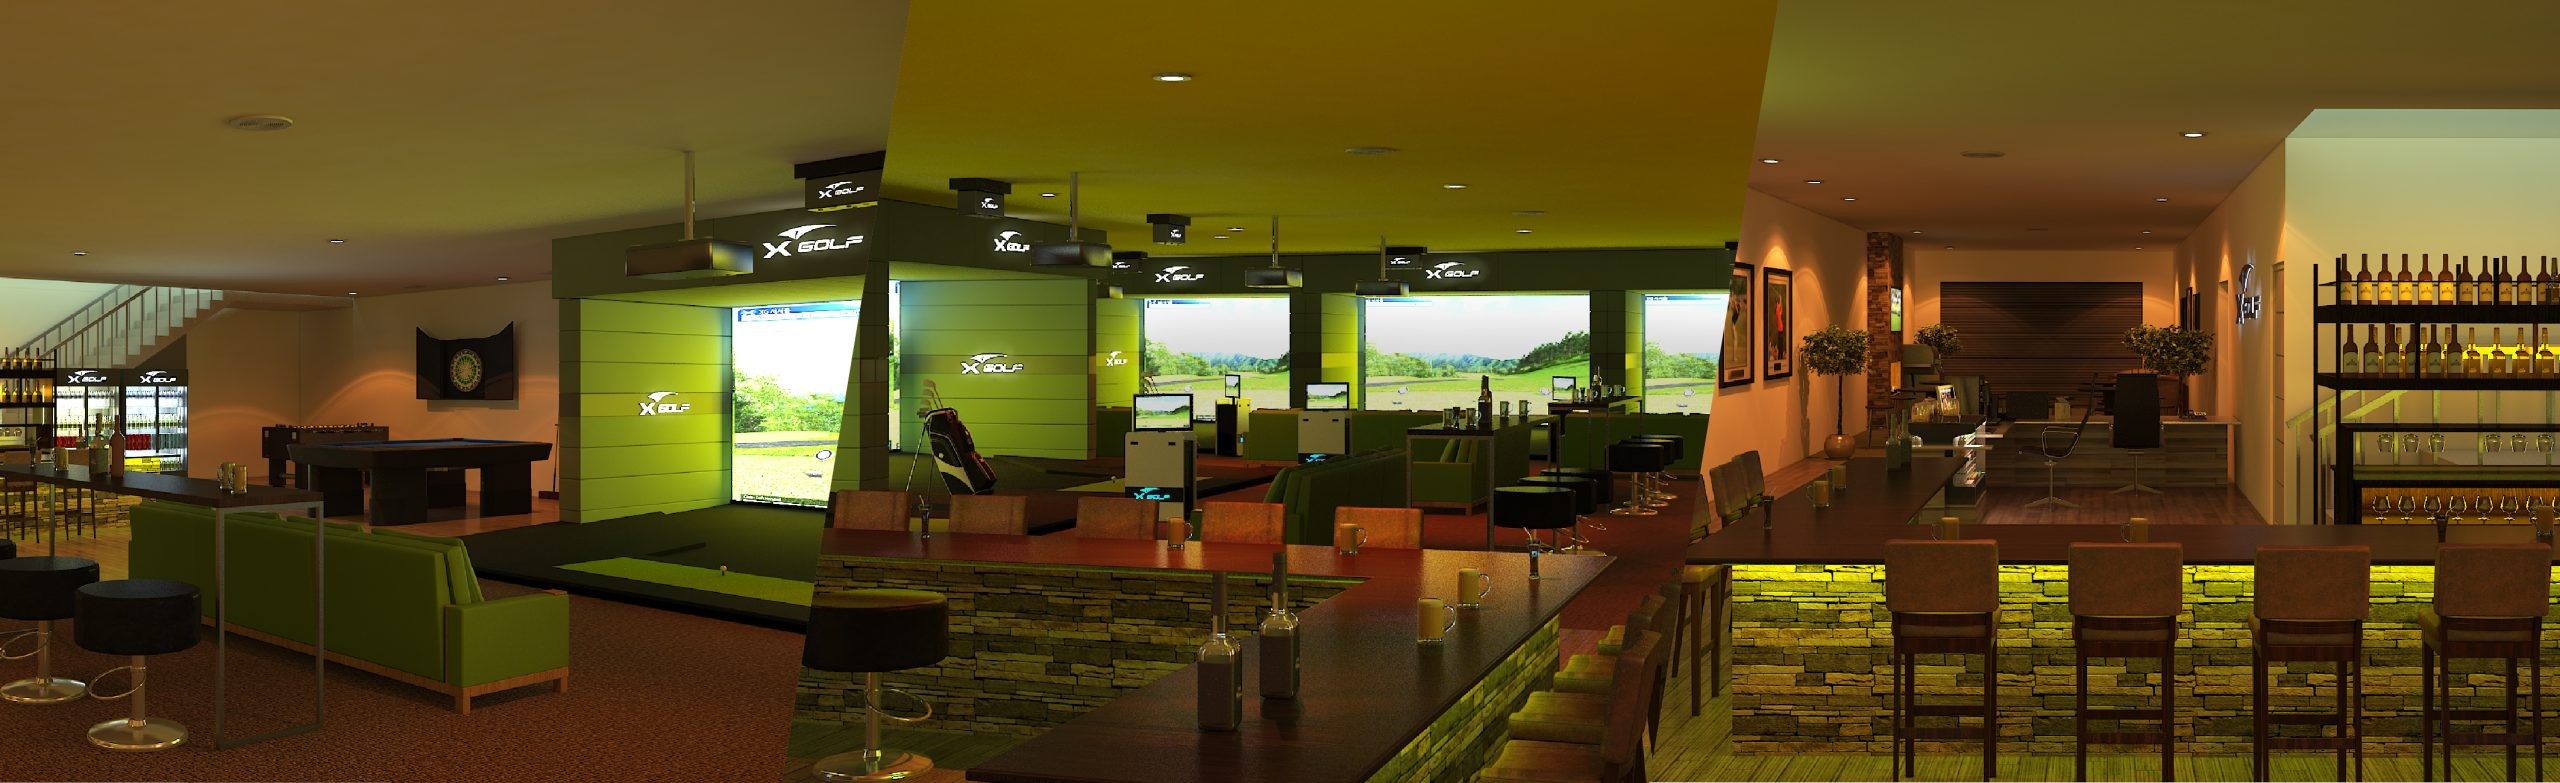 X- Golf Macarthur Venue Header IMage